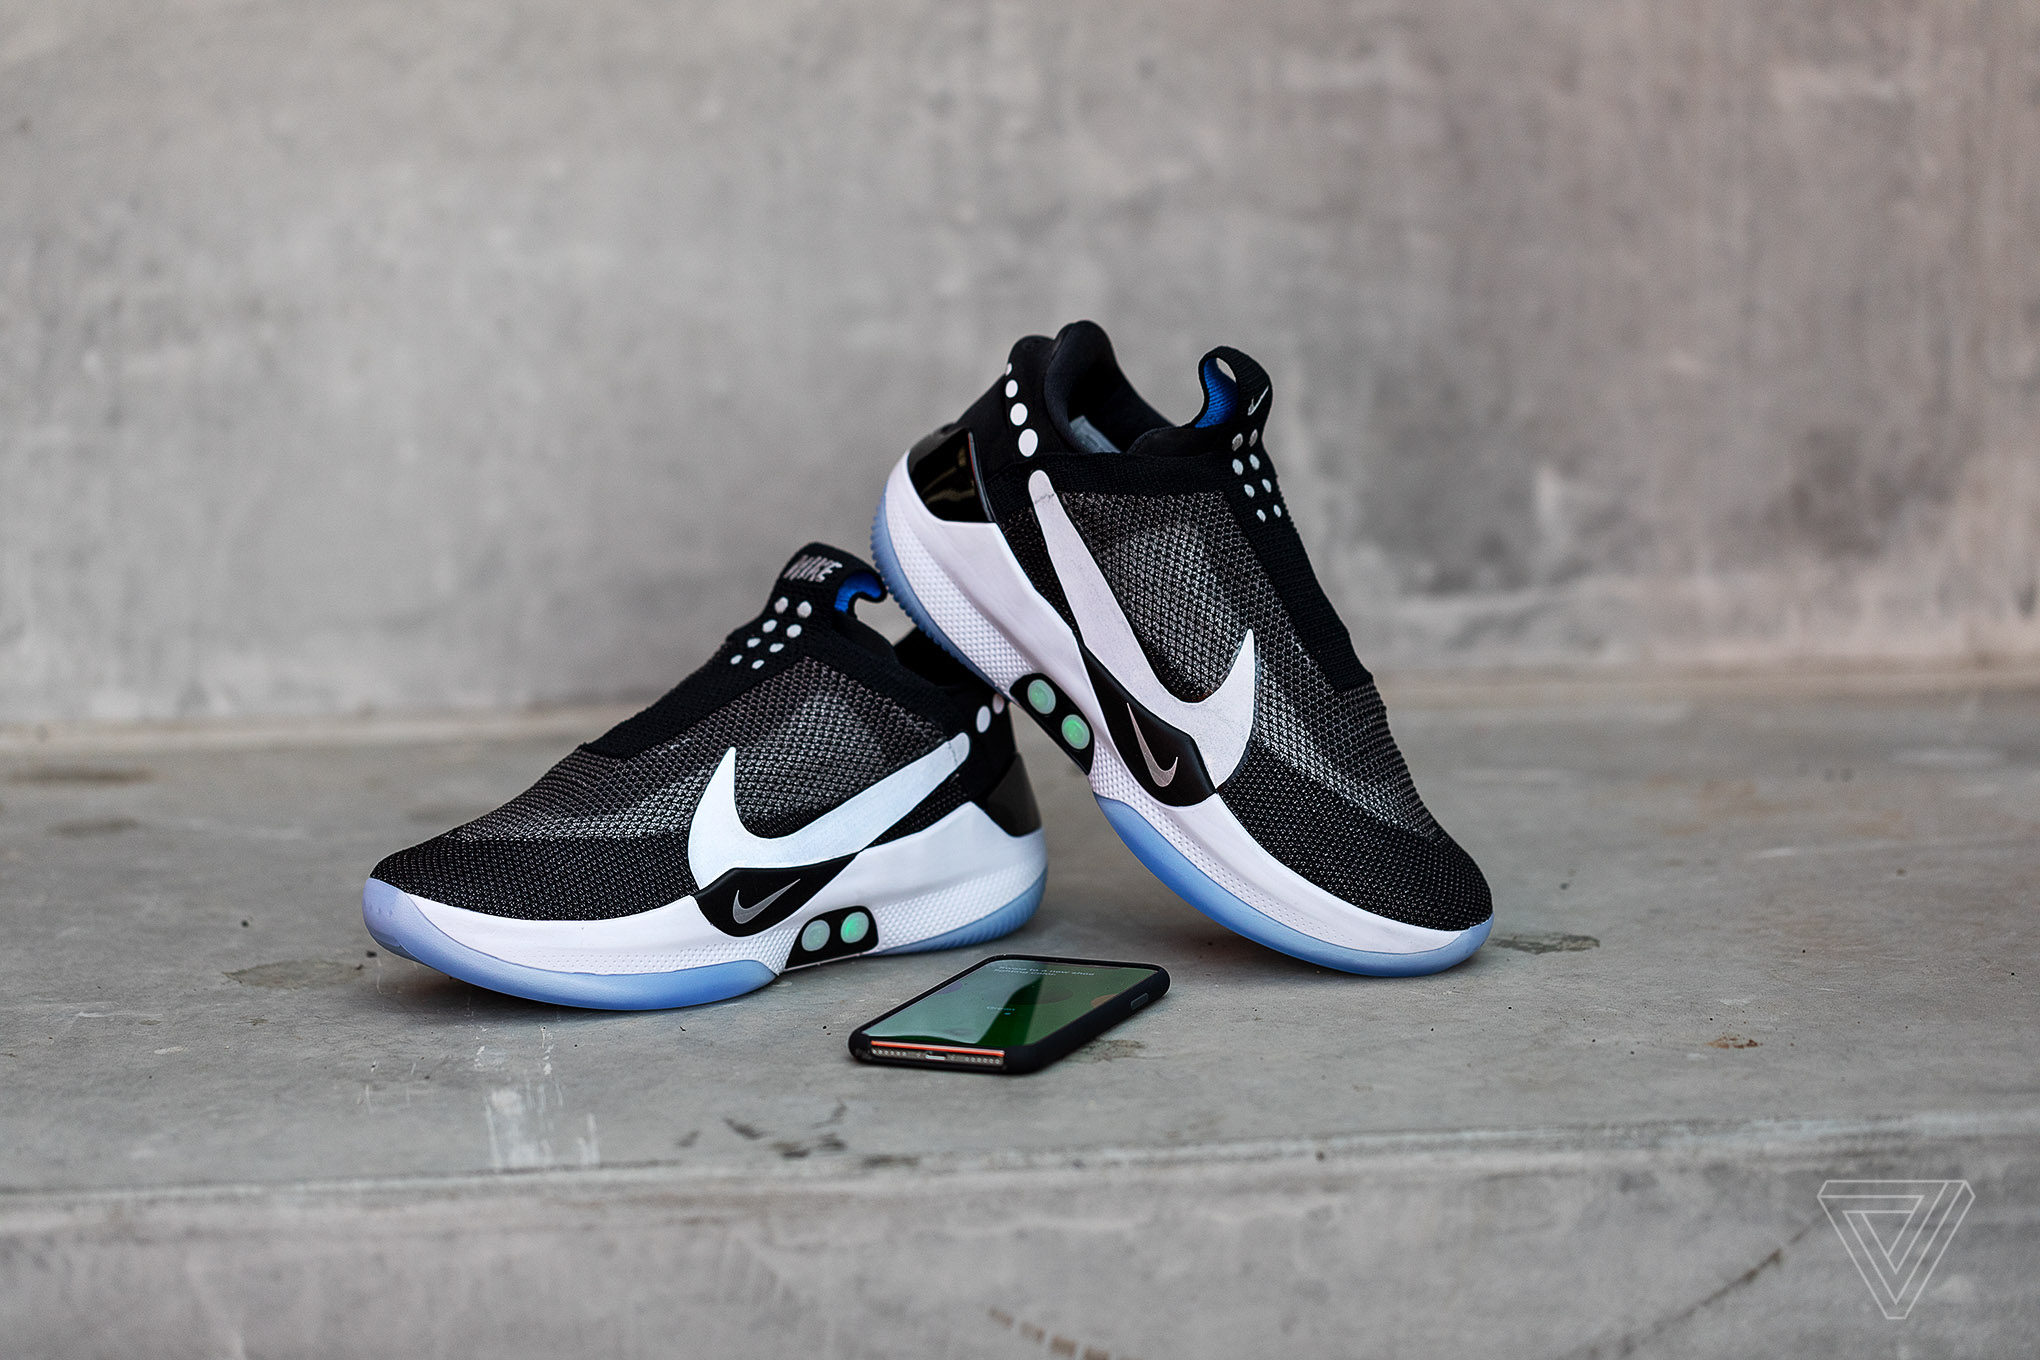 online store 0ea7a 56d87 Hands-on with Nike s self-lacing, app-controlled sneaker of the future